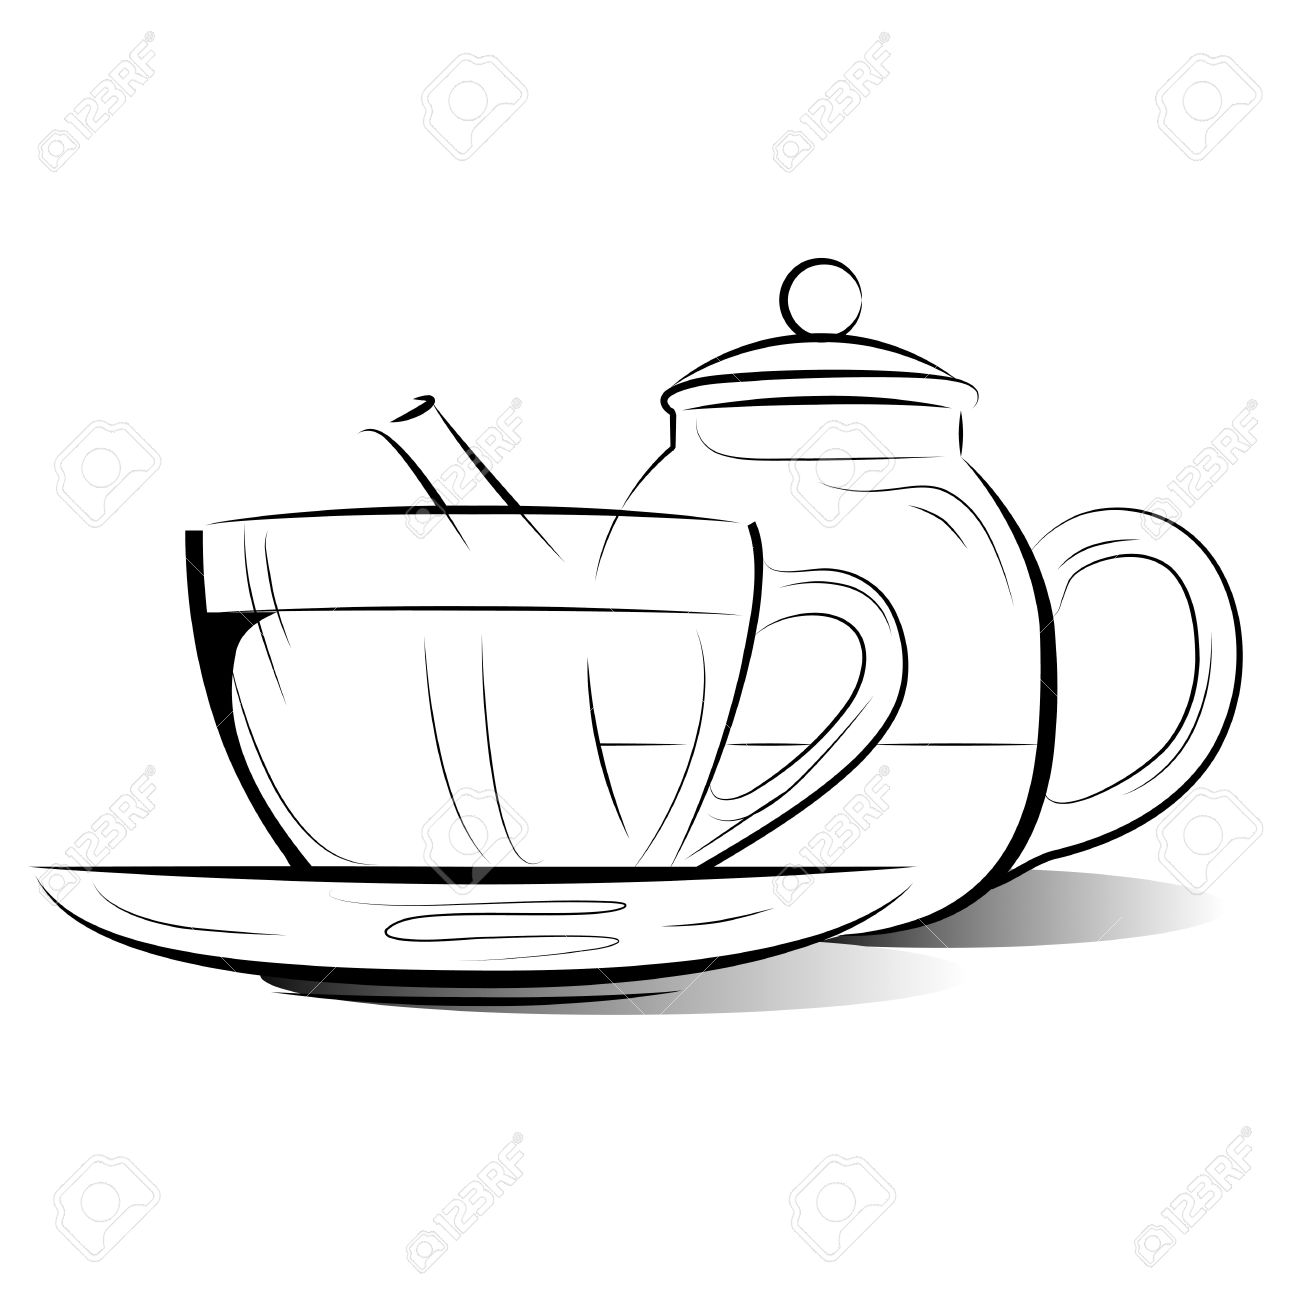 Drawing Teapot and cup of tea on a white background Stock Vector - 12828896